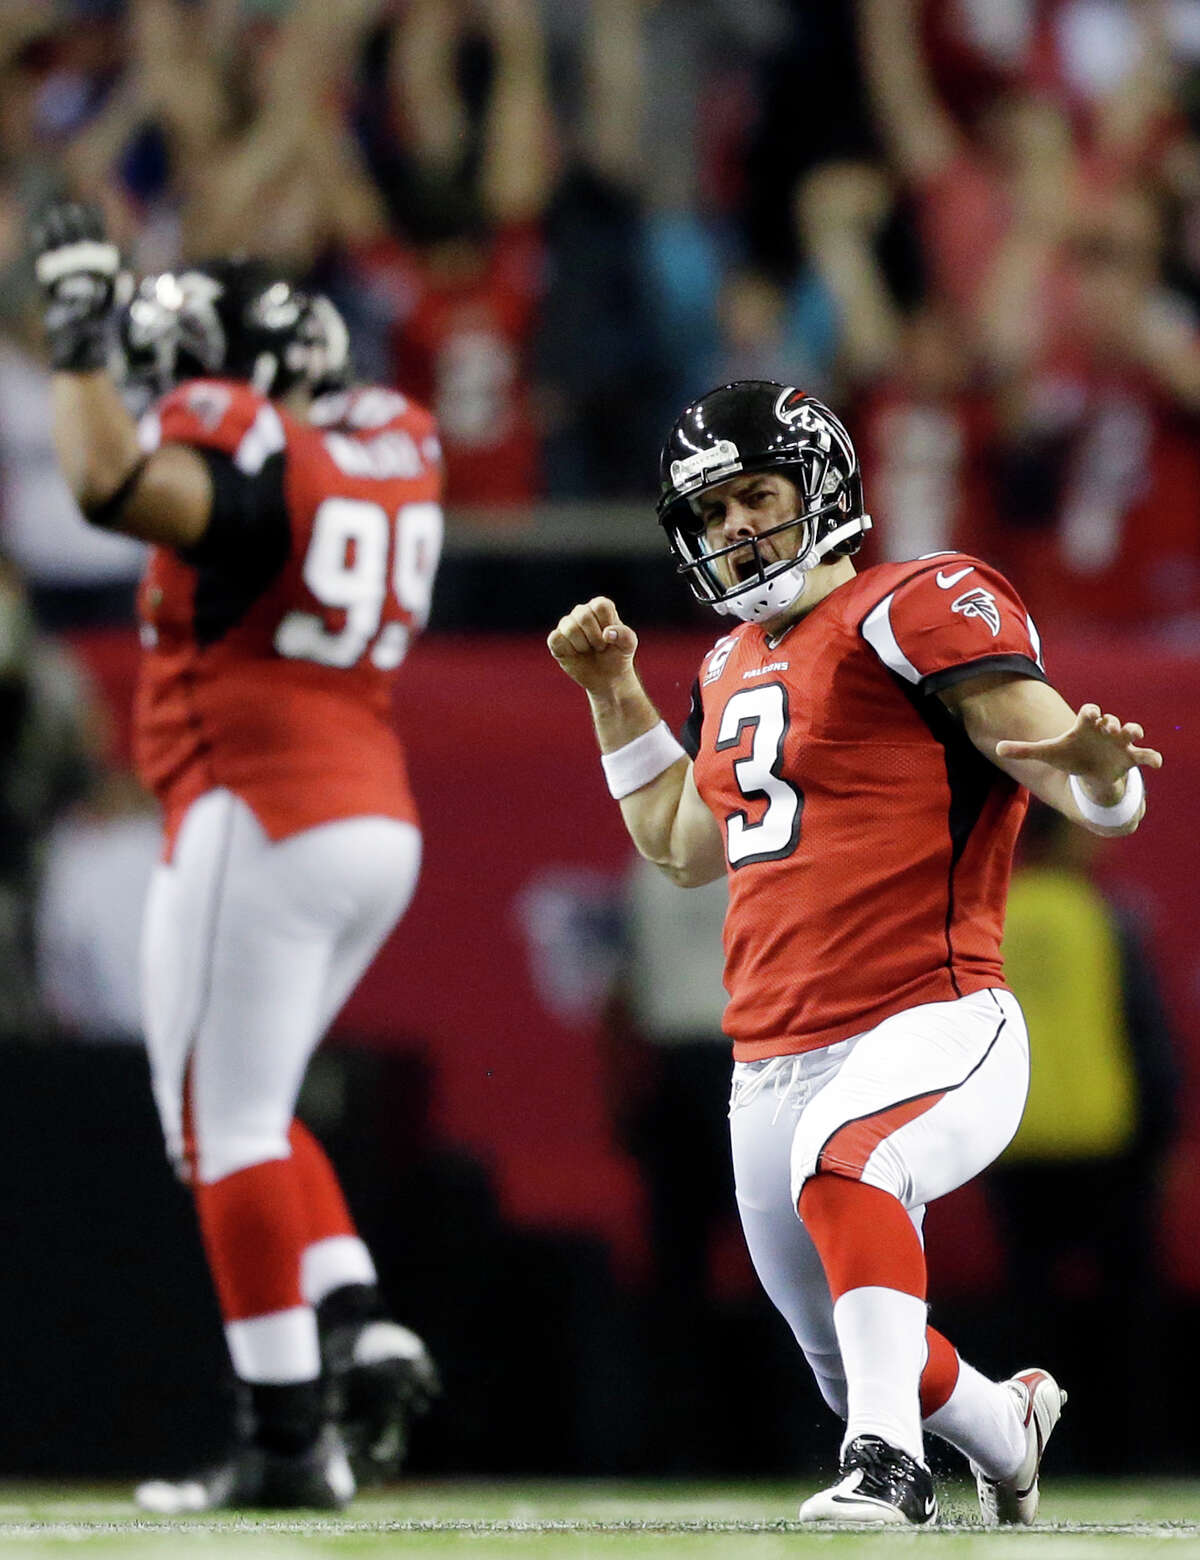 Atlanta Falcons kicker Matt Bryant (3) reacts to his game-winning field goal against the Seattle Seahawks during the second half of an NFC divisional playoff NFL football game Sunday, Jan. 13, 2013, in Atlanta. The Falcons won 30-28. (AP Photo/David Goldman)